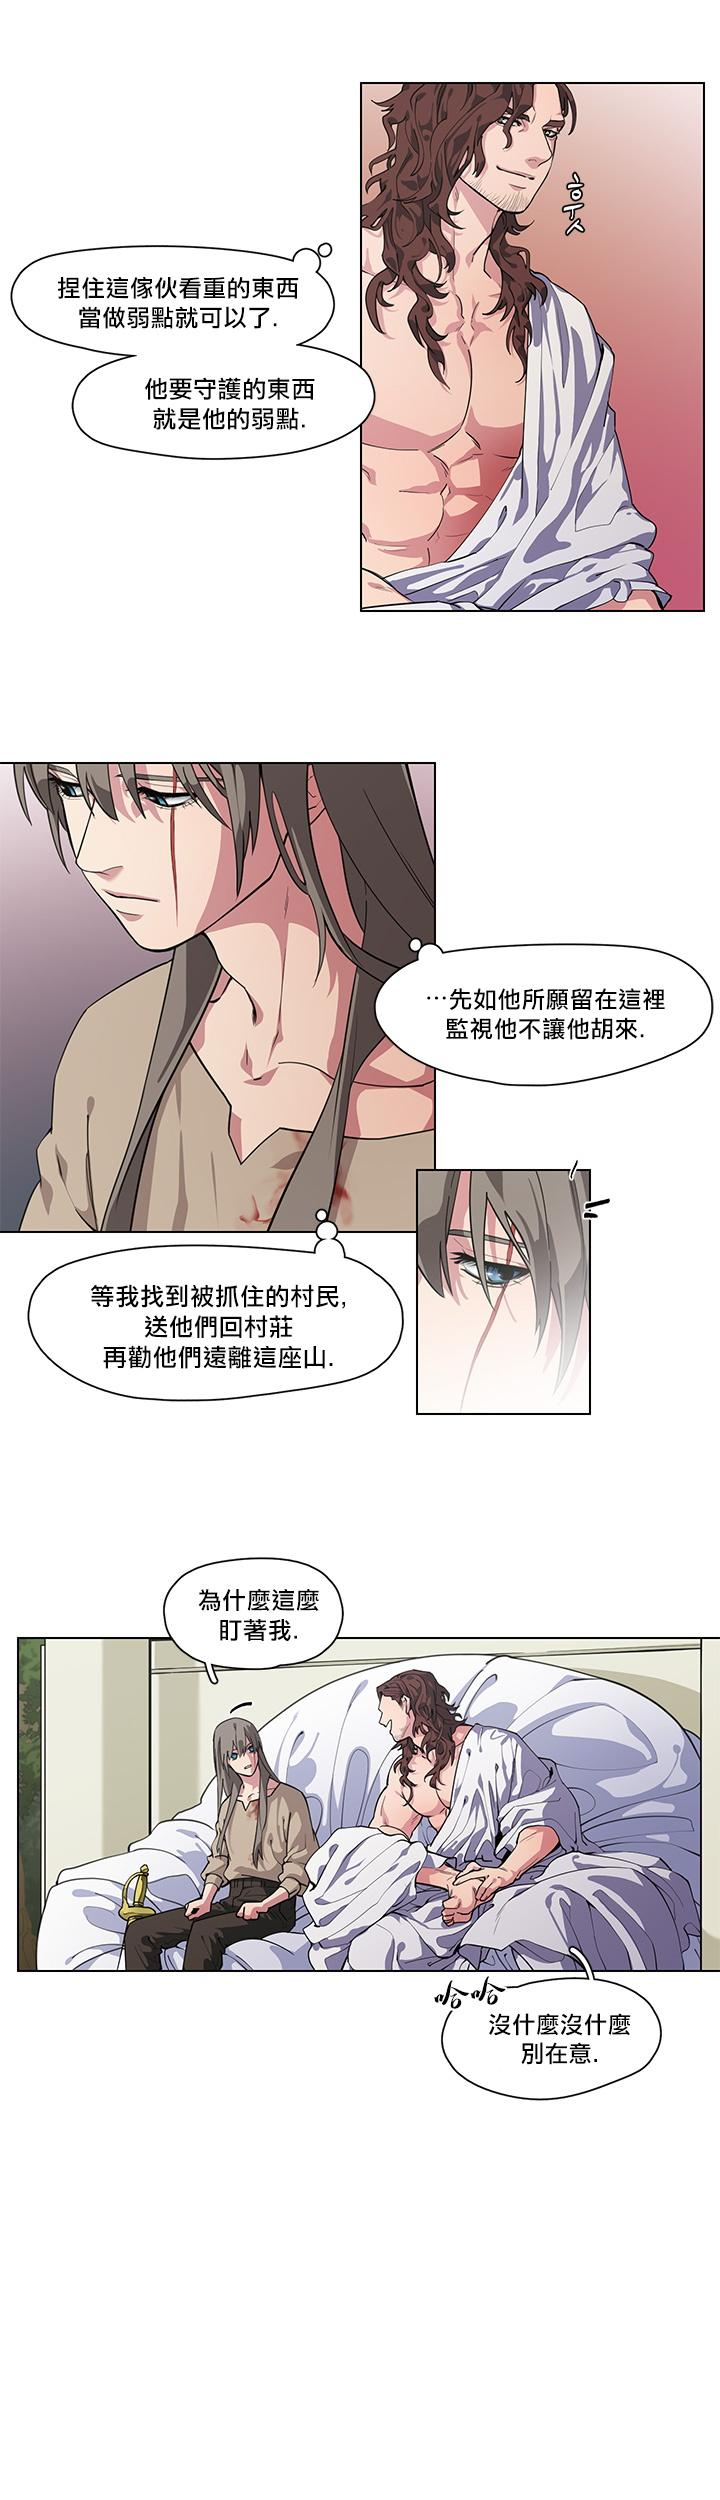 The Warrior and the Deity   勇者与山神 Ch. 2-6+加笔1+加笔2 6